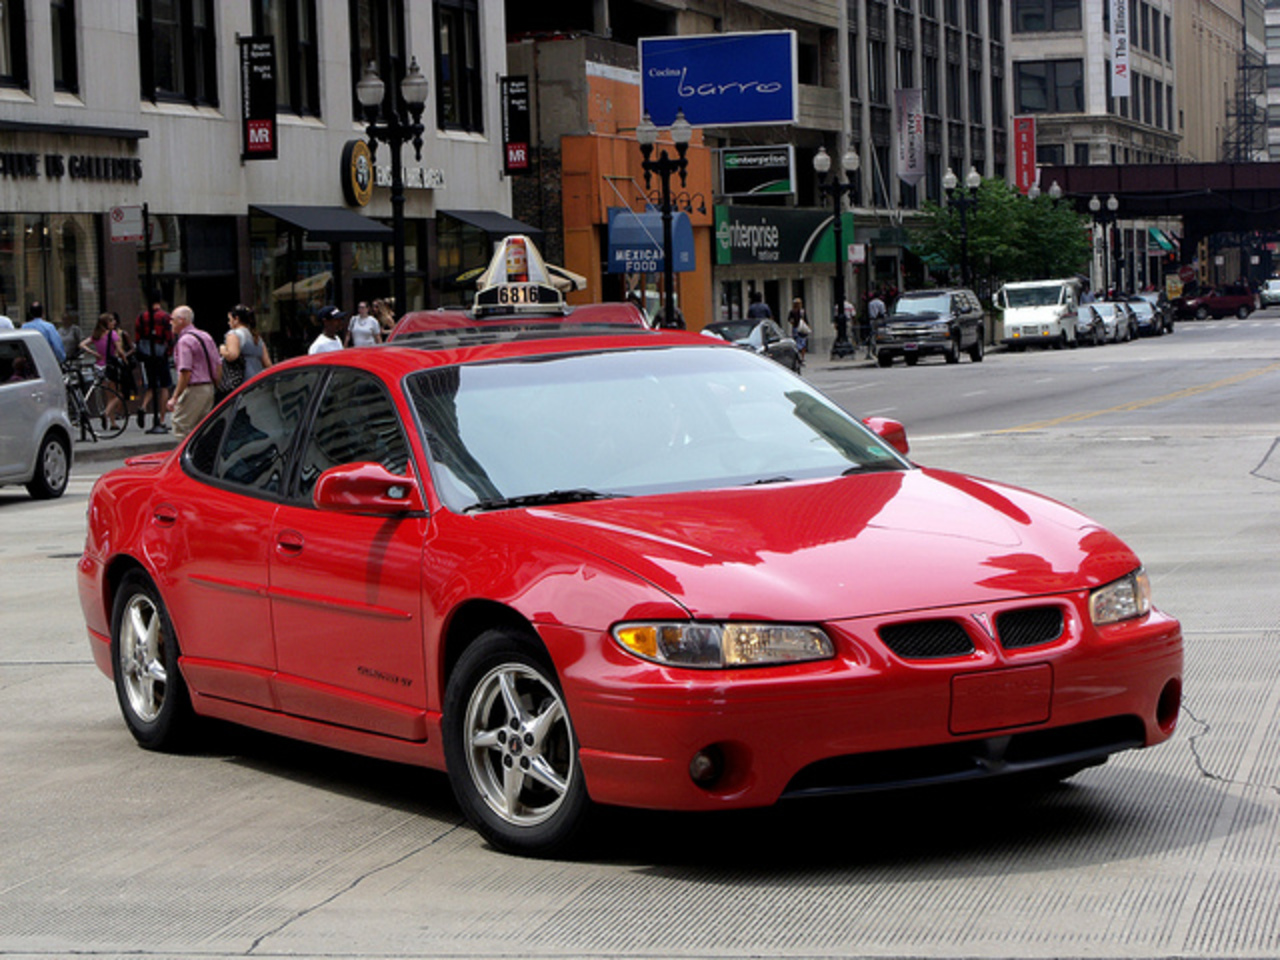 2003 Pontiac Grand Prix GT | Flickr - Photo Sharing!